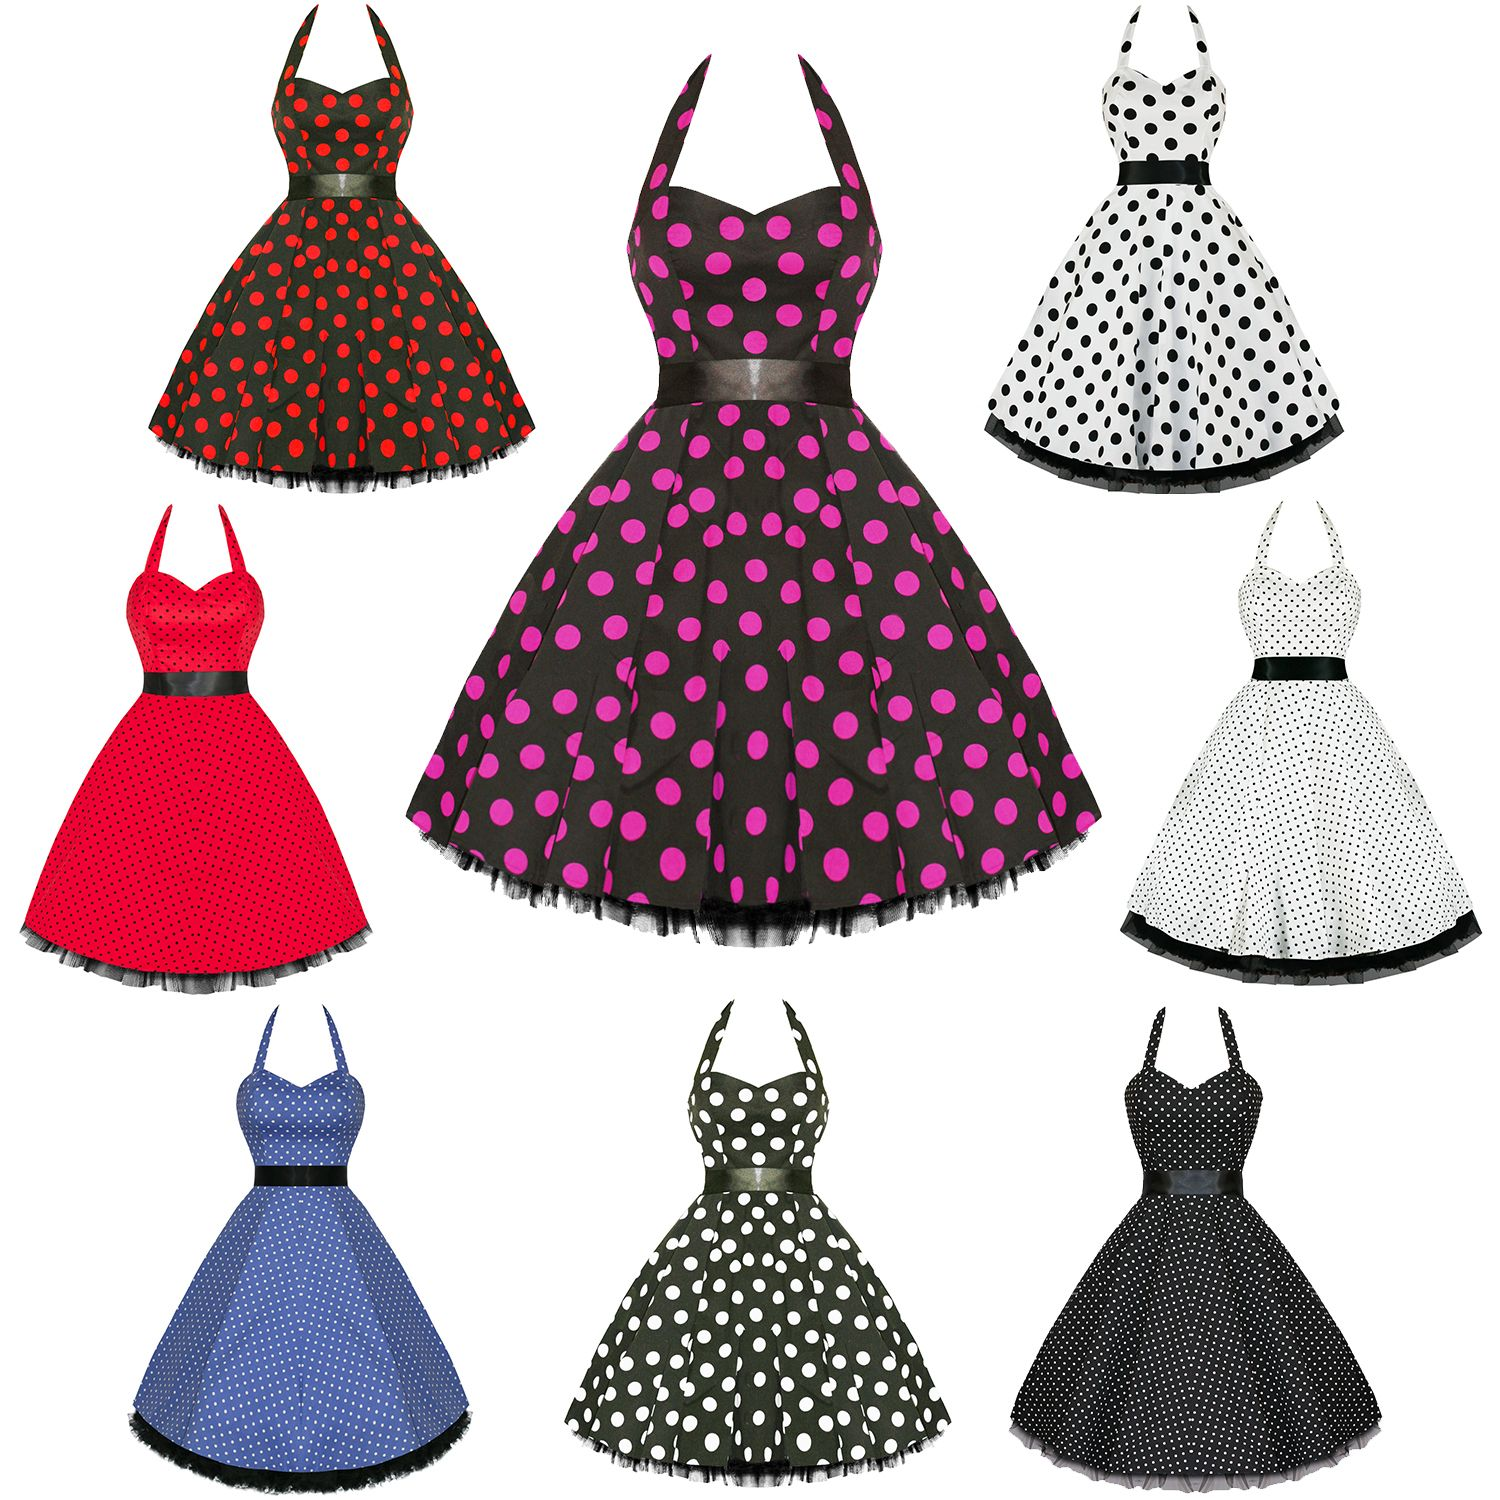 Cheap 50 s style dresses uk party